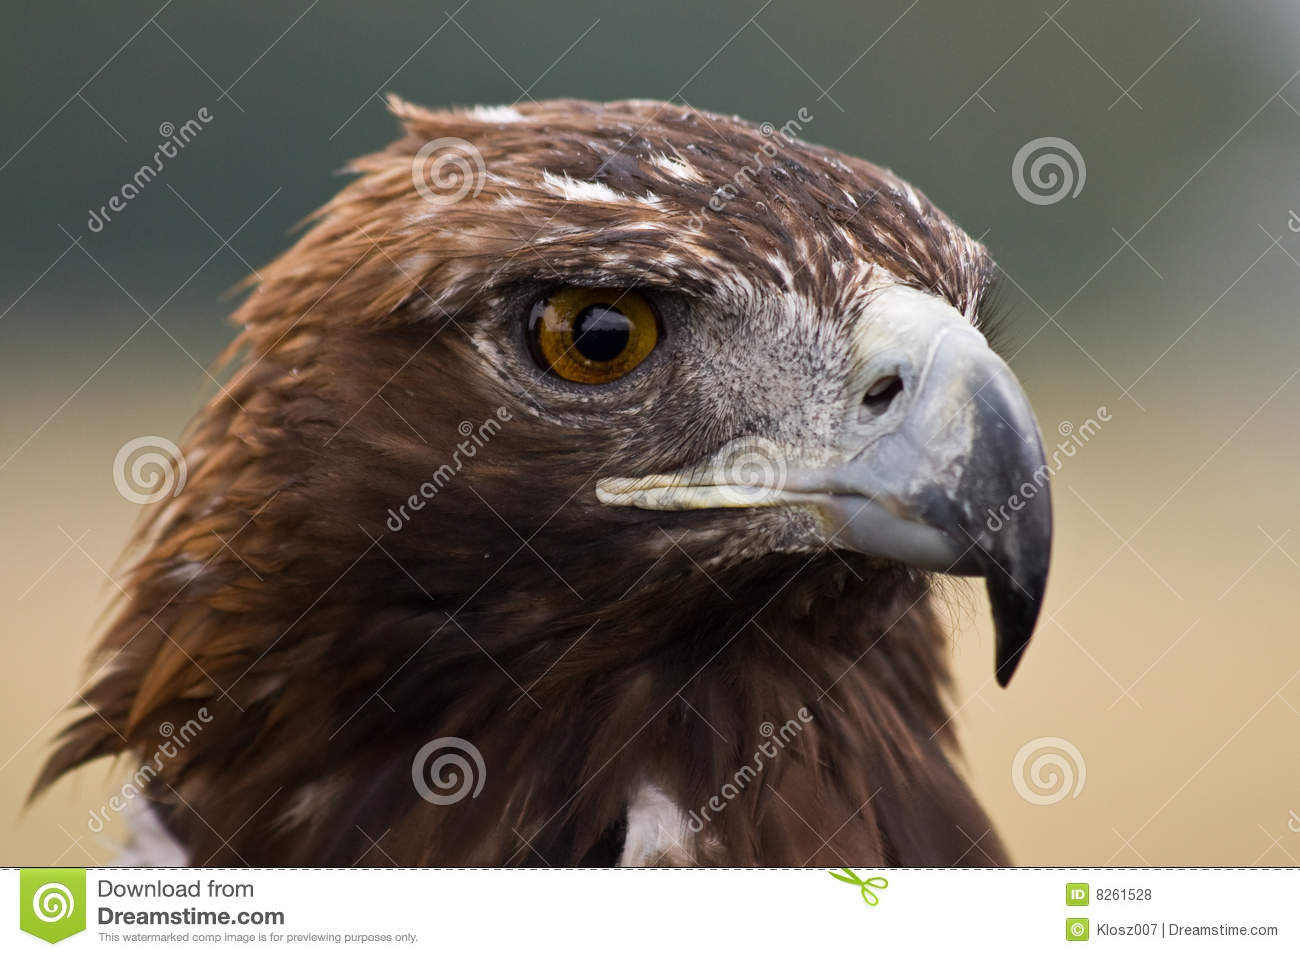 Hd Vector Wallpapers Free Download Golden Eagle Face Royalty Free Stock Photos Image 8261528